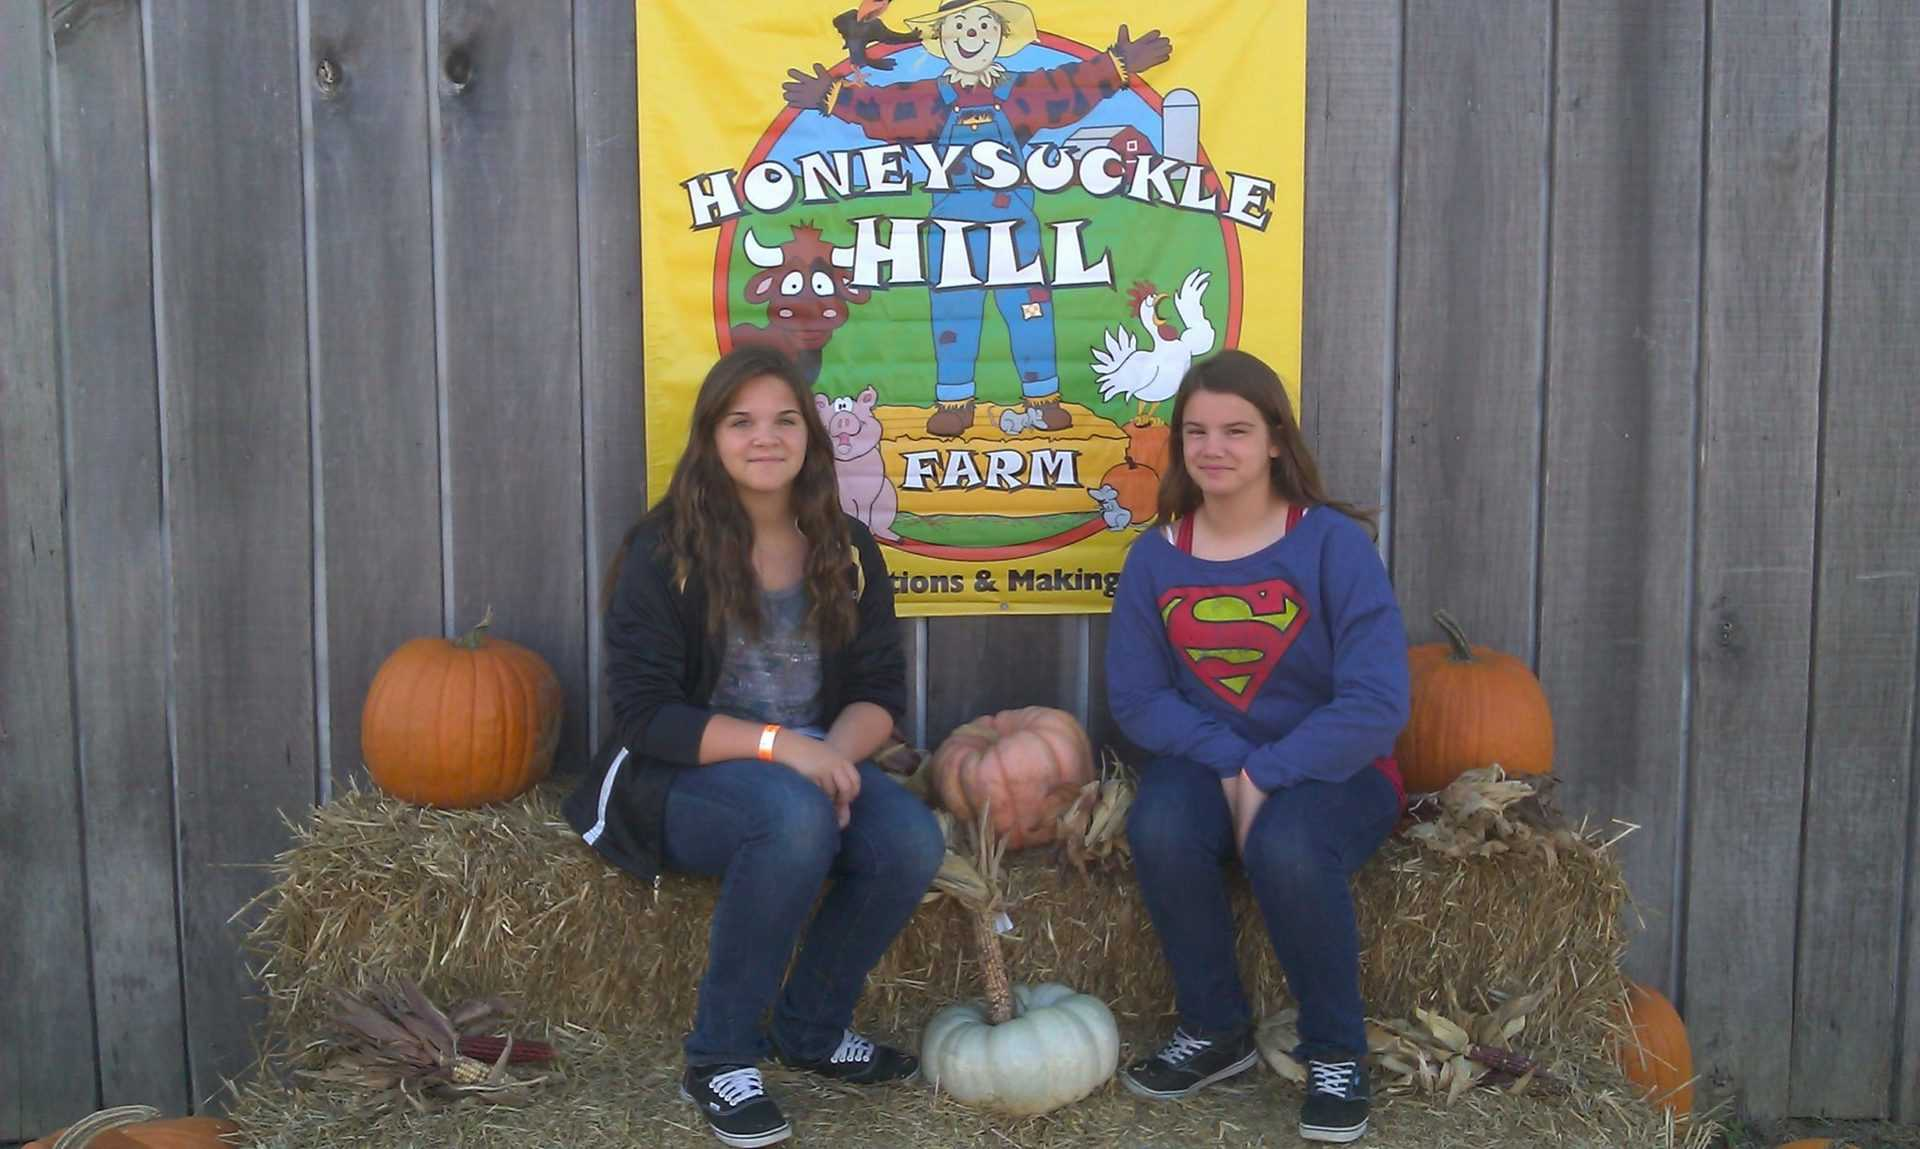 girls at Honeysuckle Hill Farm sign